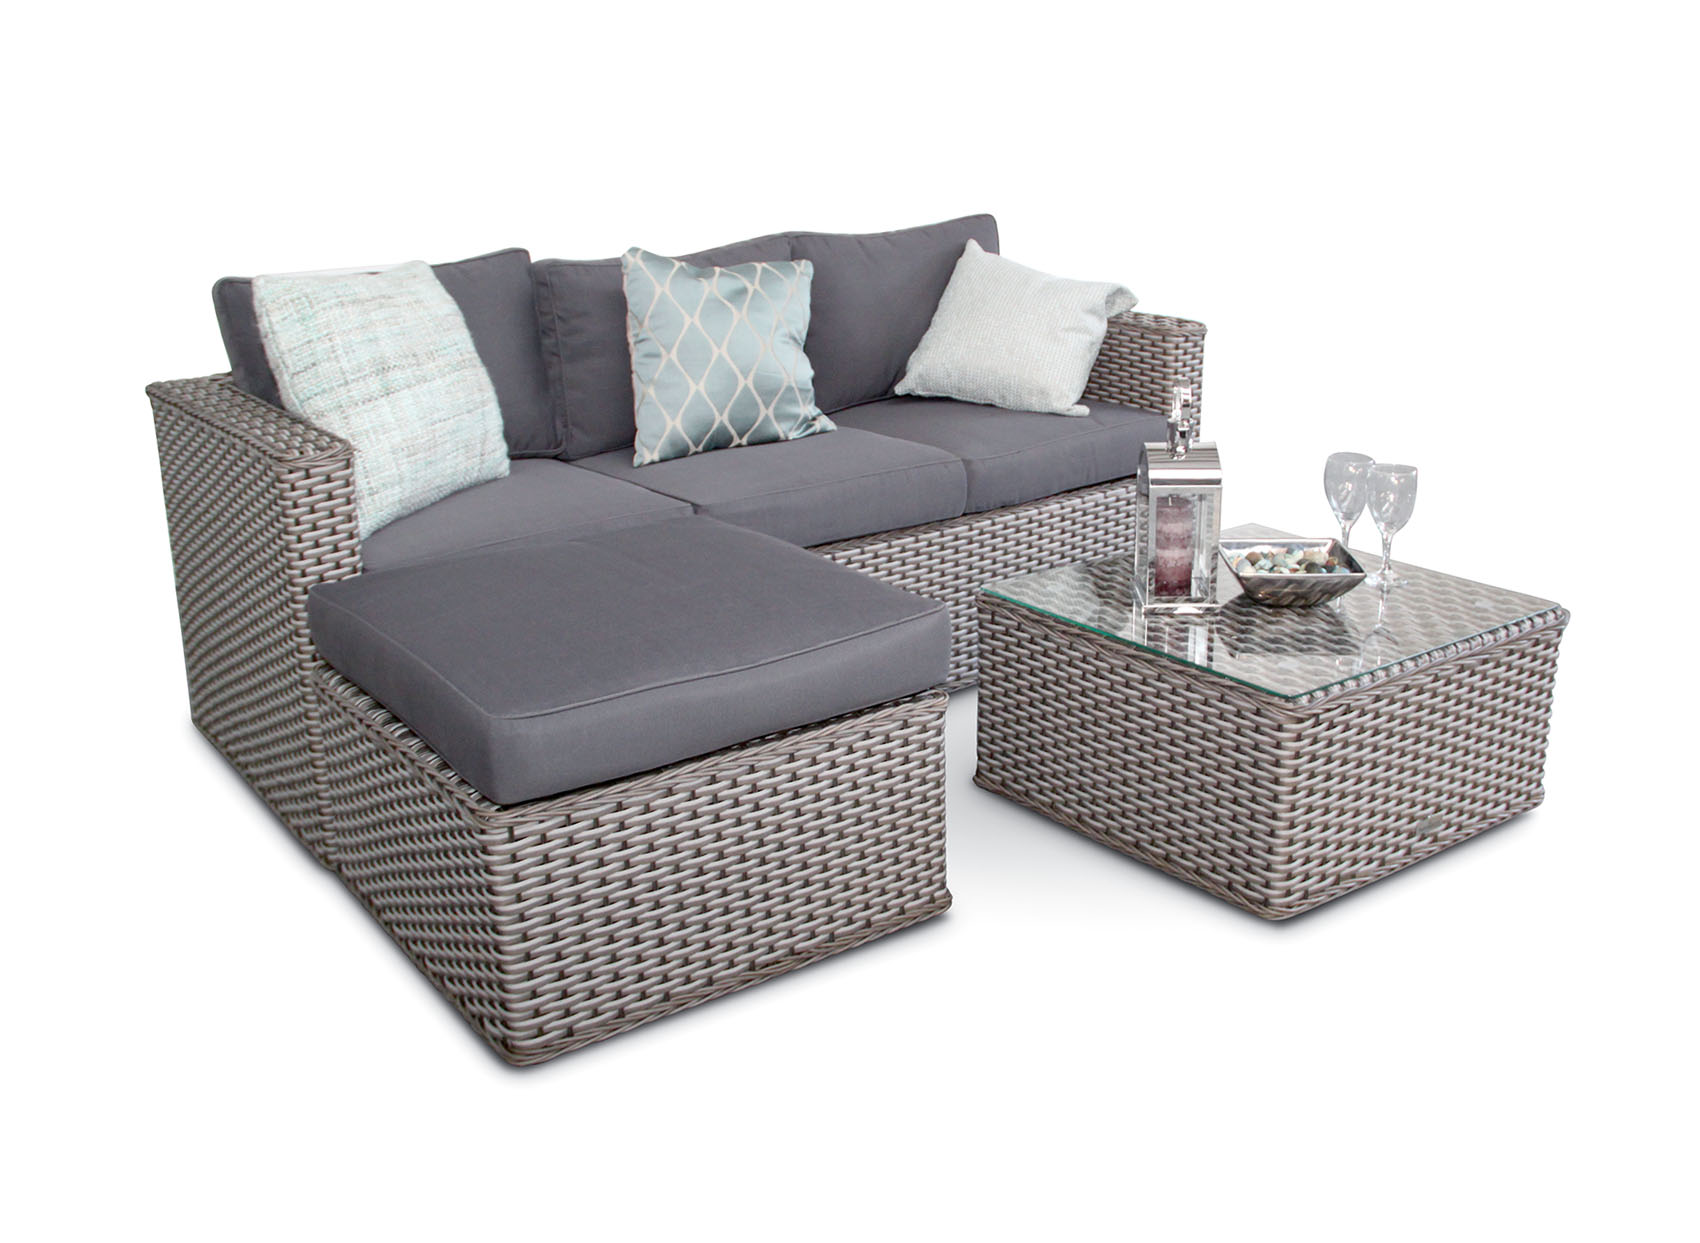 Cozy rattan corner sofa bahamas rattan 3 seater outdoor sofa set - 5pc - grey whitewash ocskird